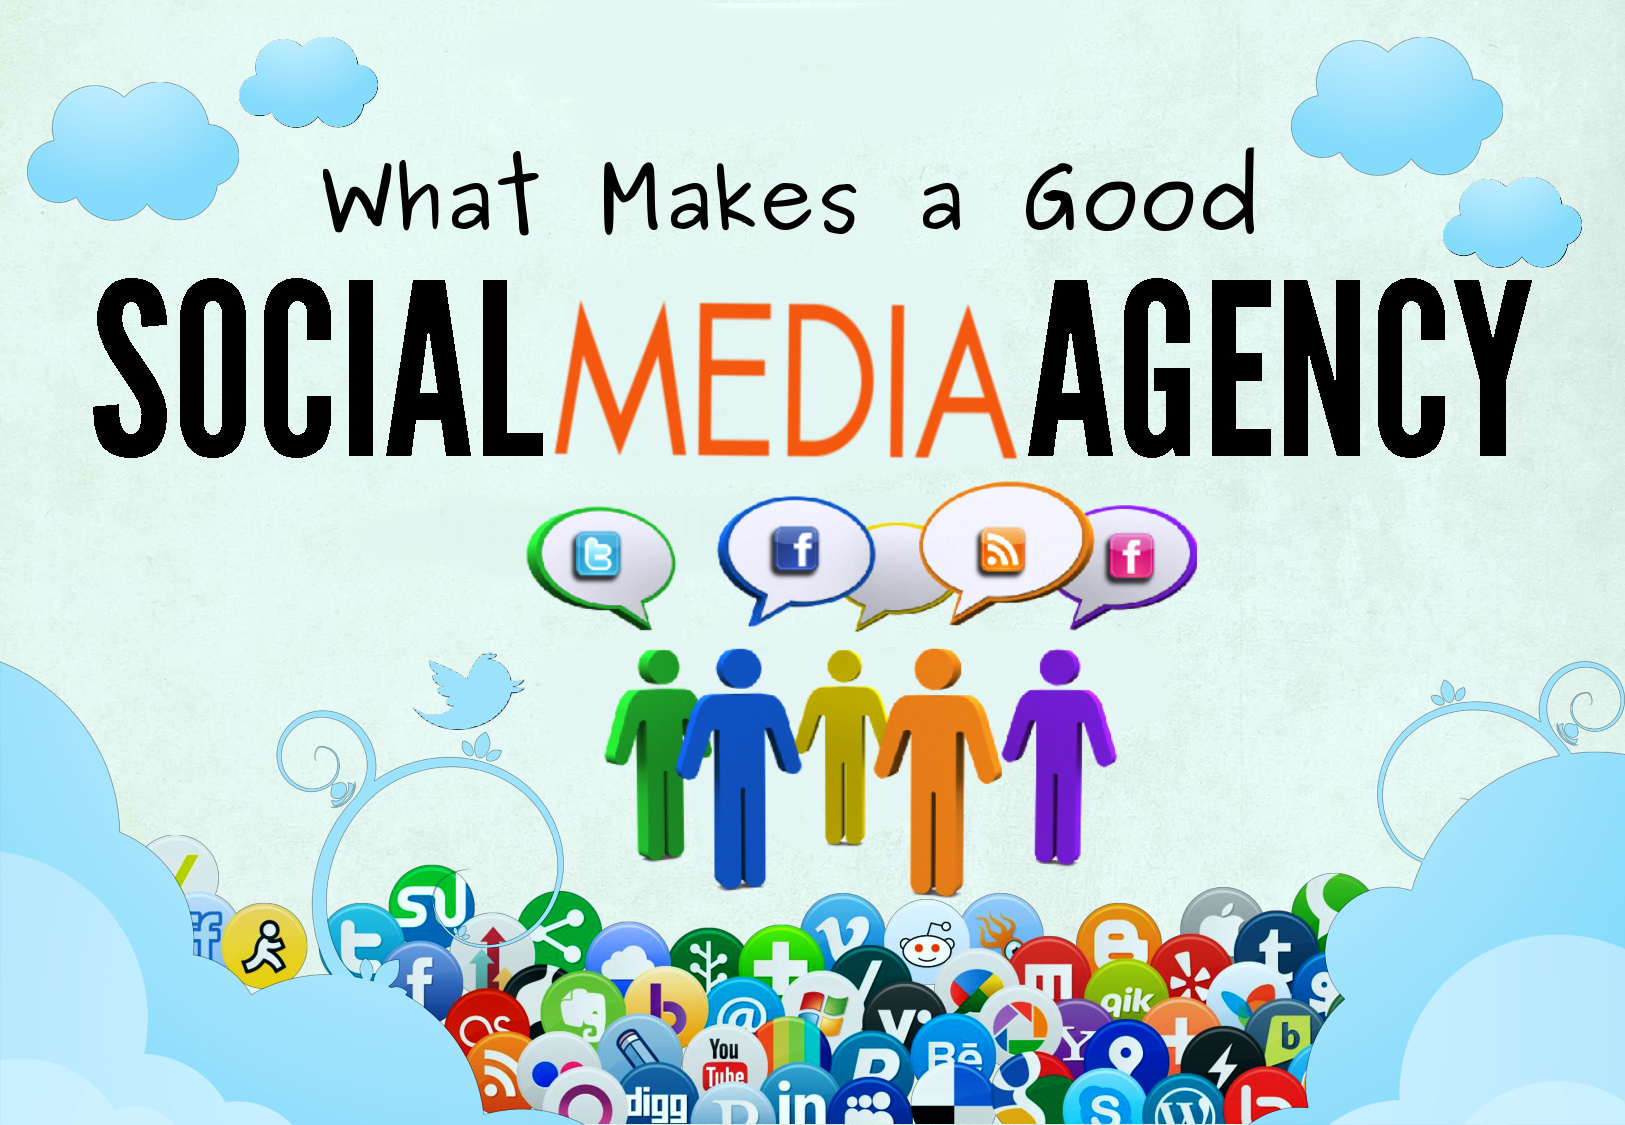 Social Media Agency HD For Wallpapers 3948 Wallpaper ForWallpapers 1625x1125